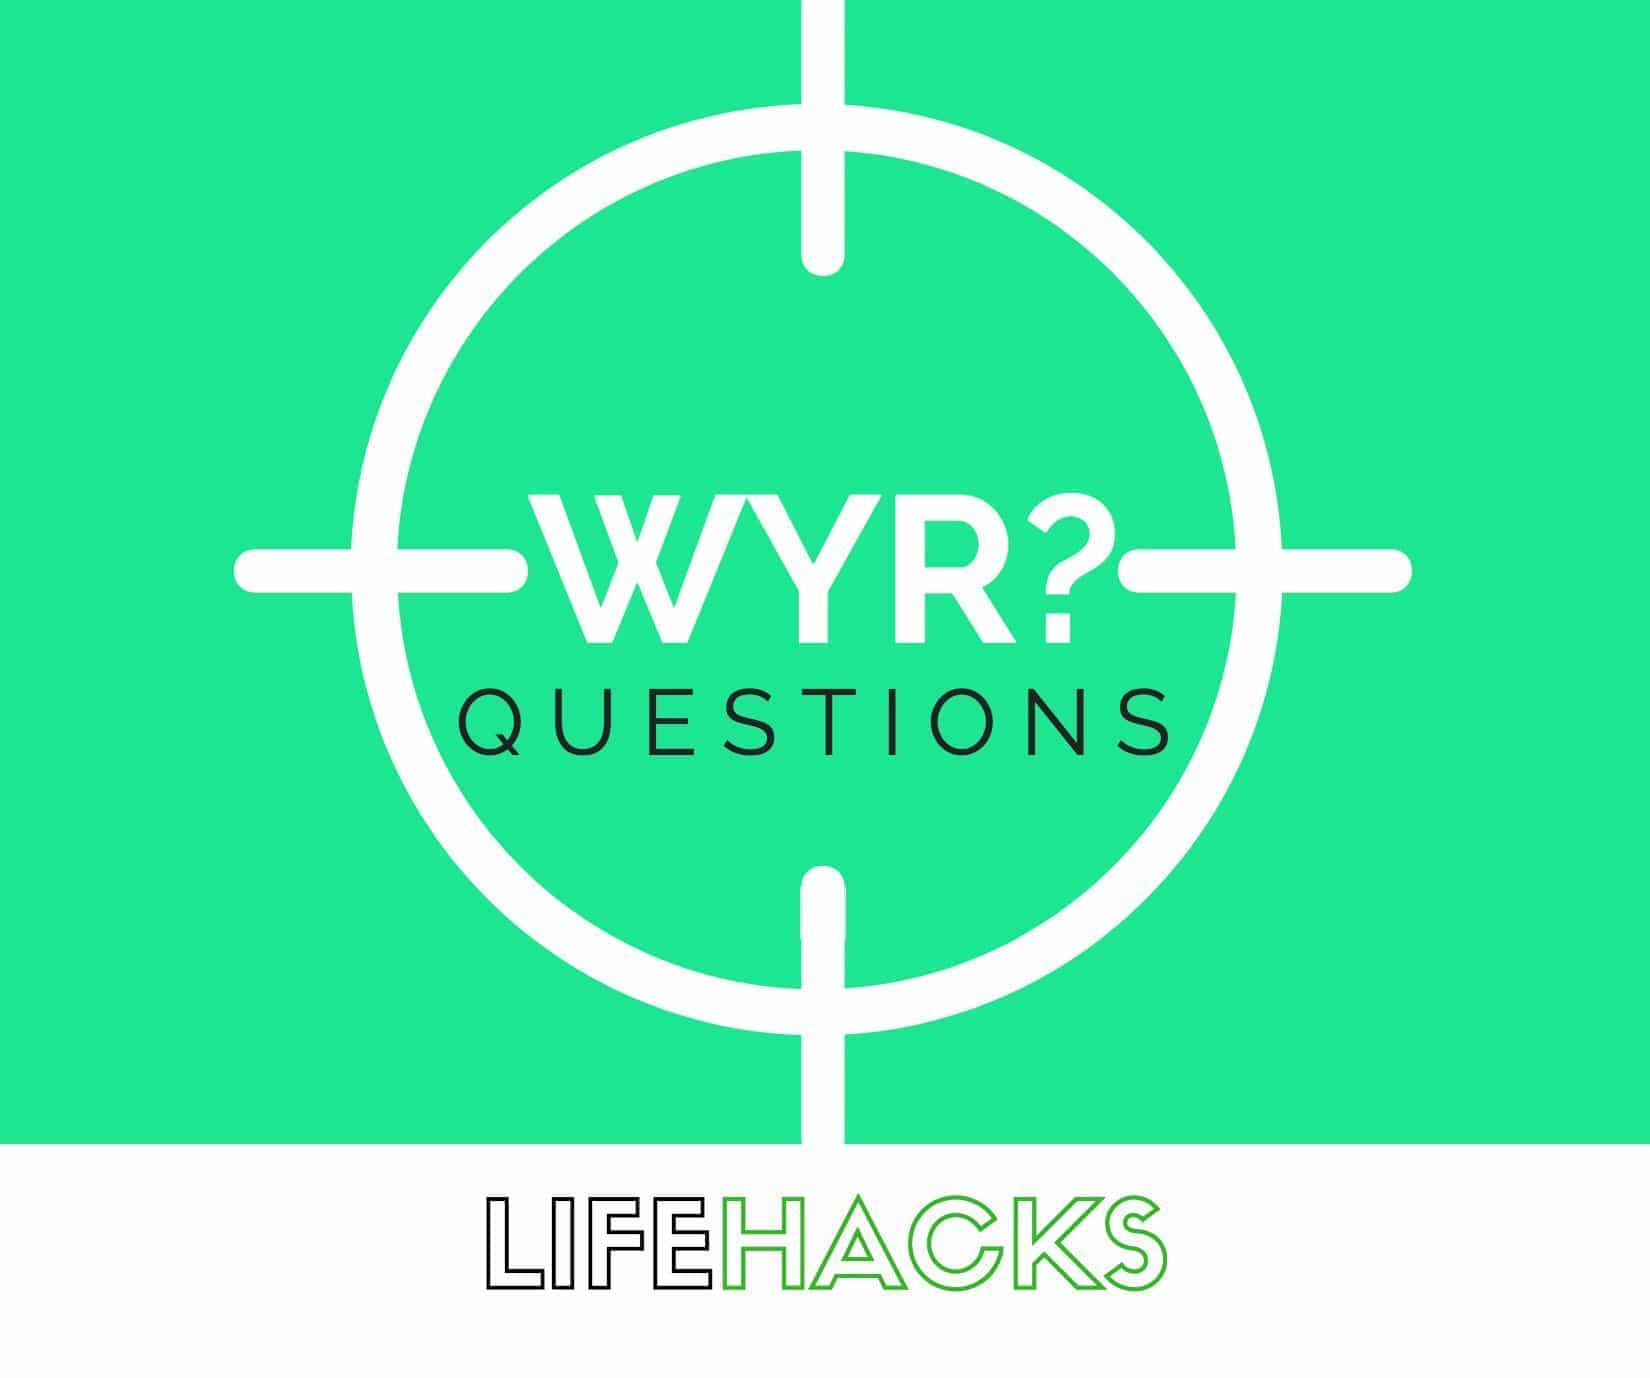 LifeHacks - The Hardest Would You Rather Questions